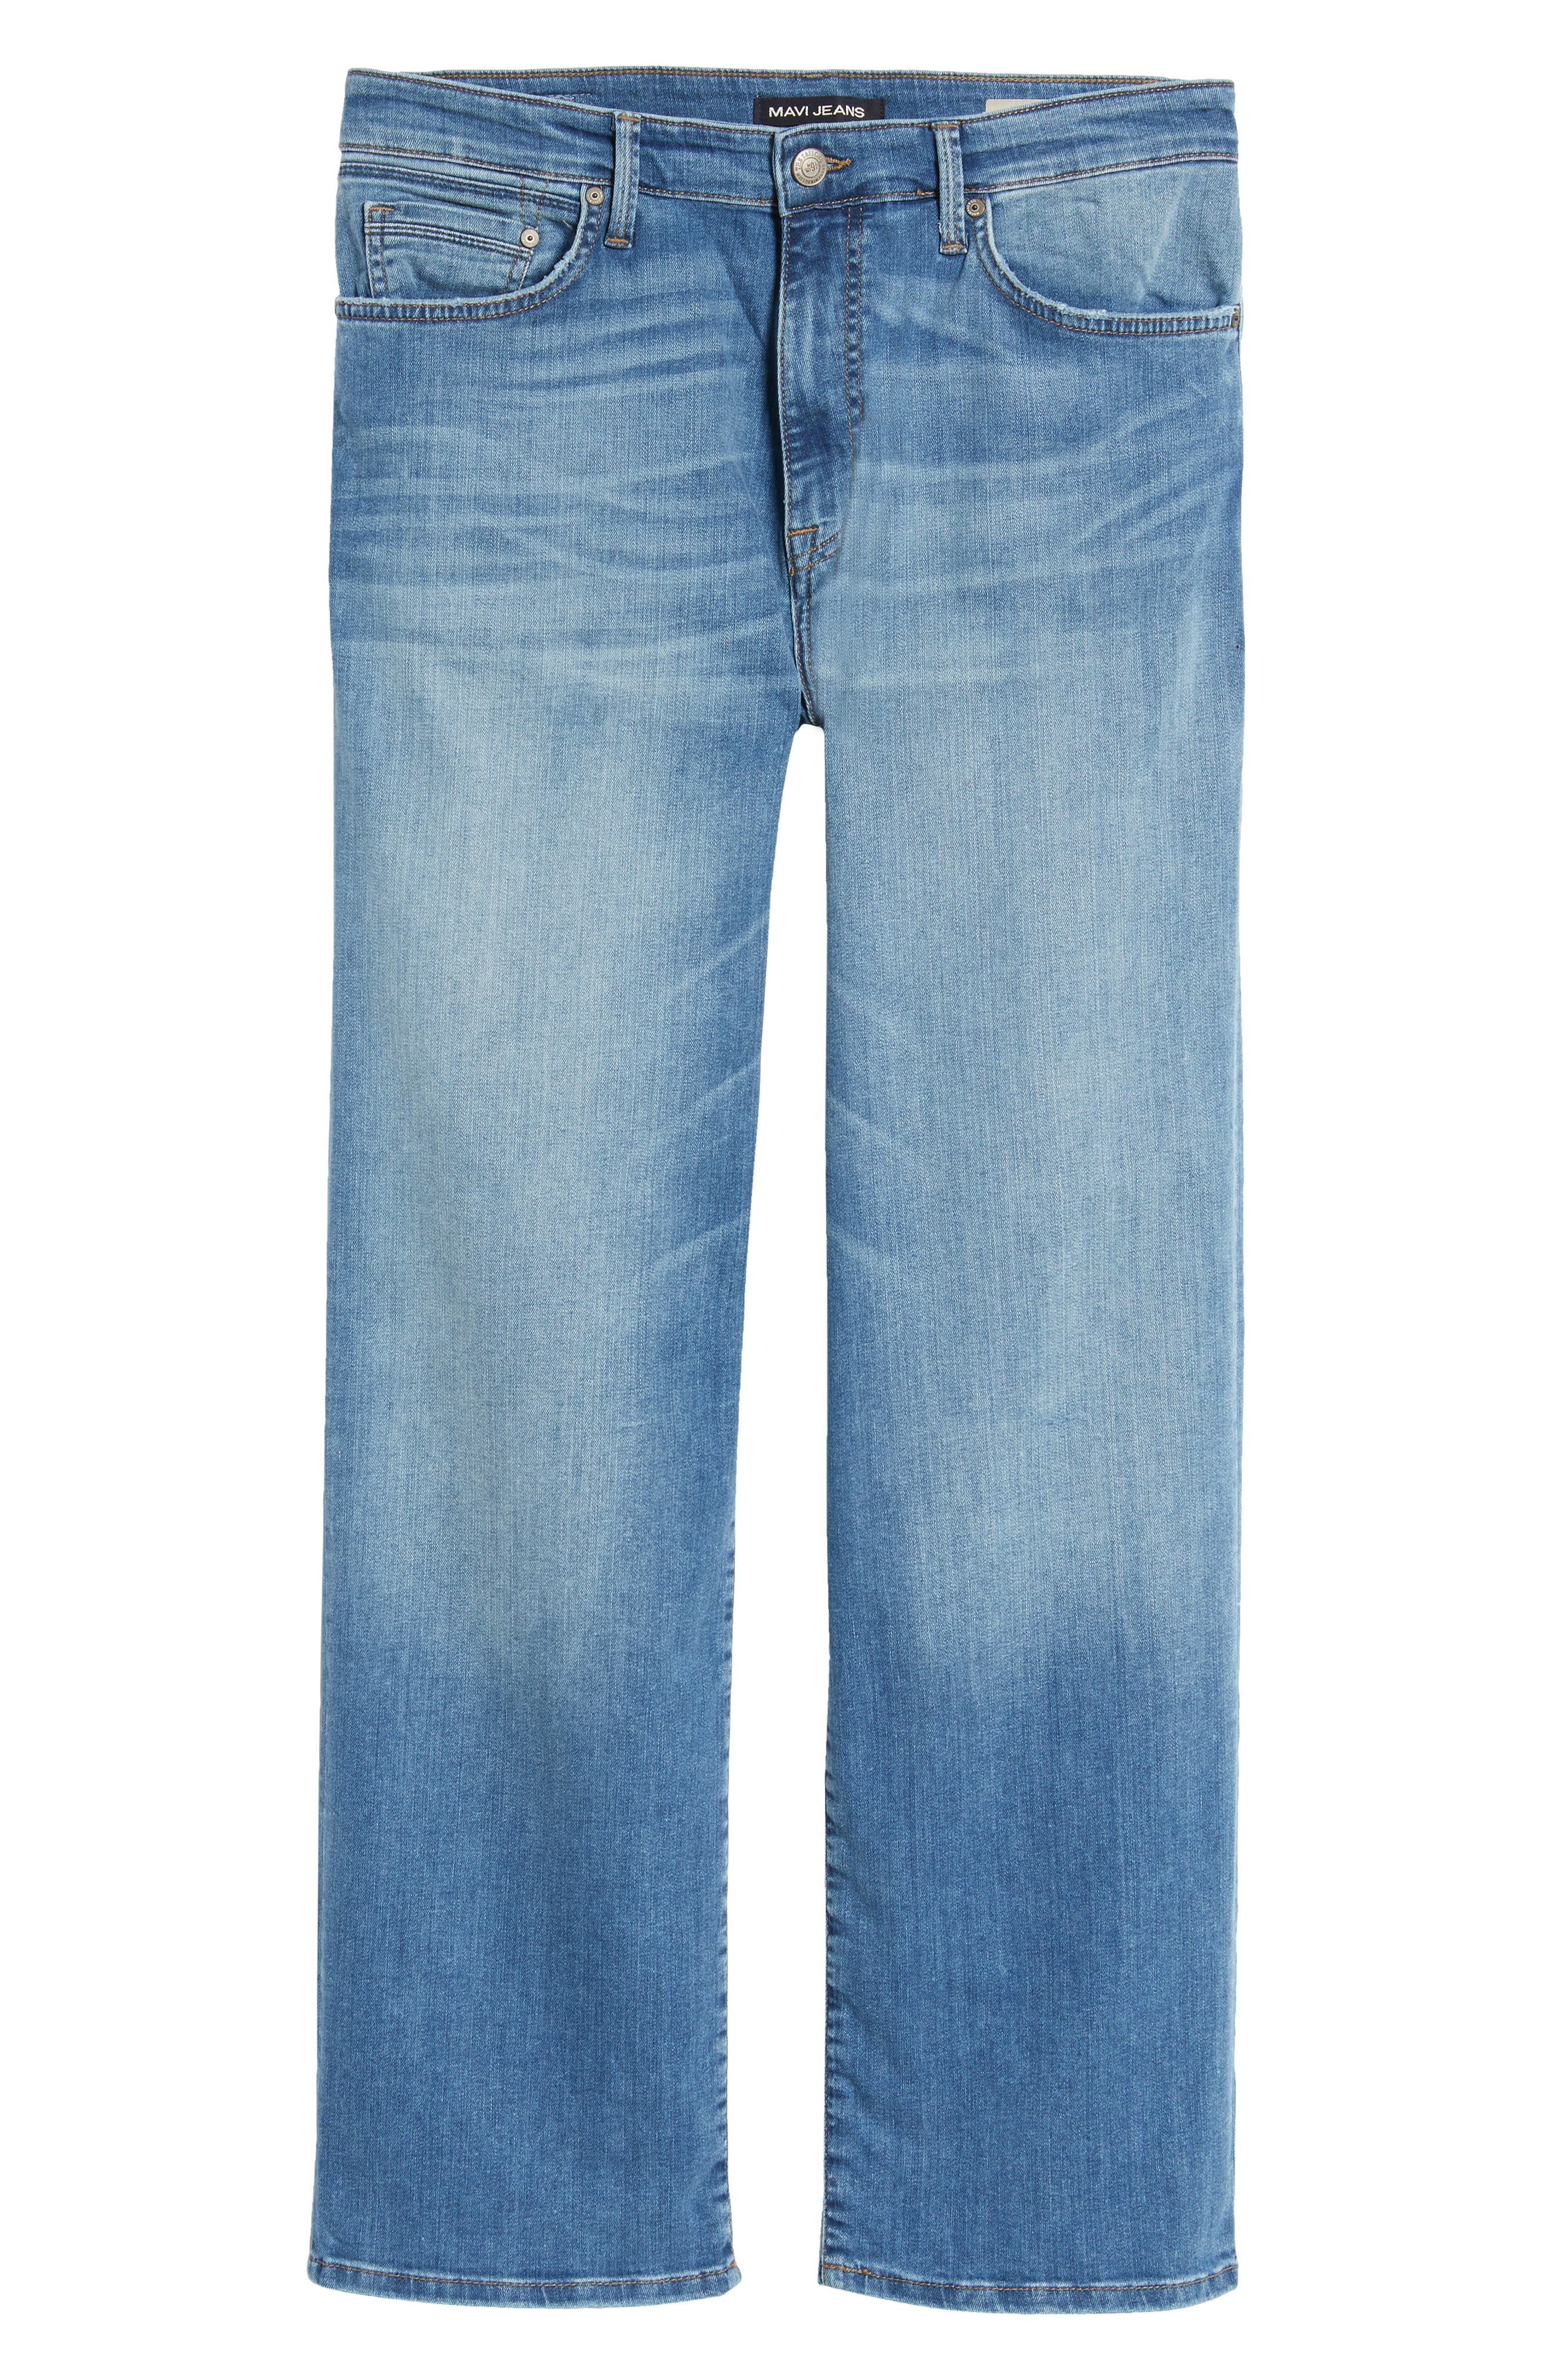 Max Relaxed Fit Jeans,                             Alternate thumbnail 6, color,                             401